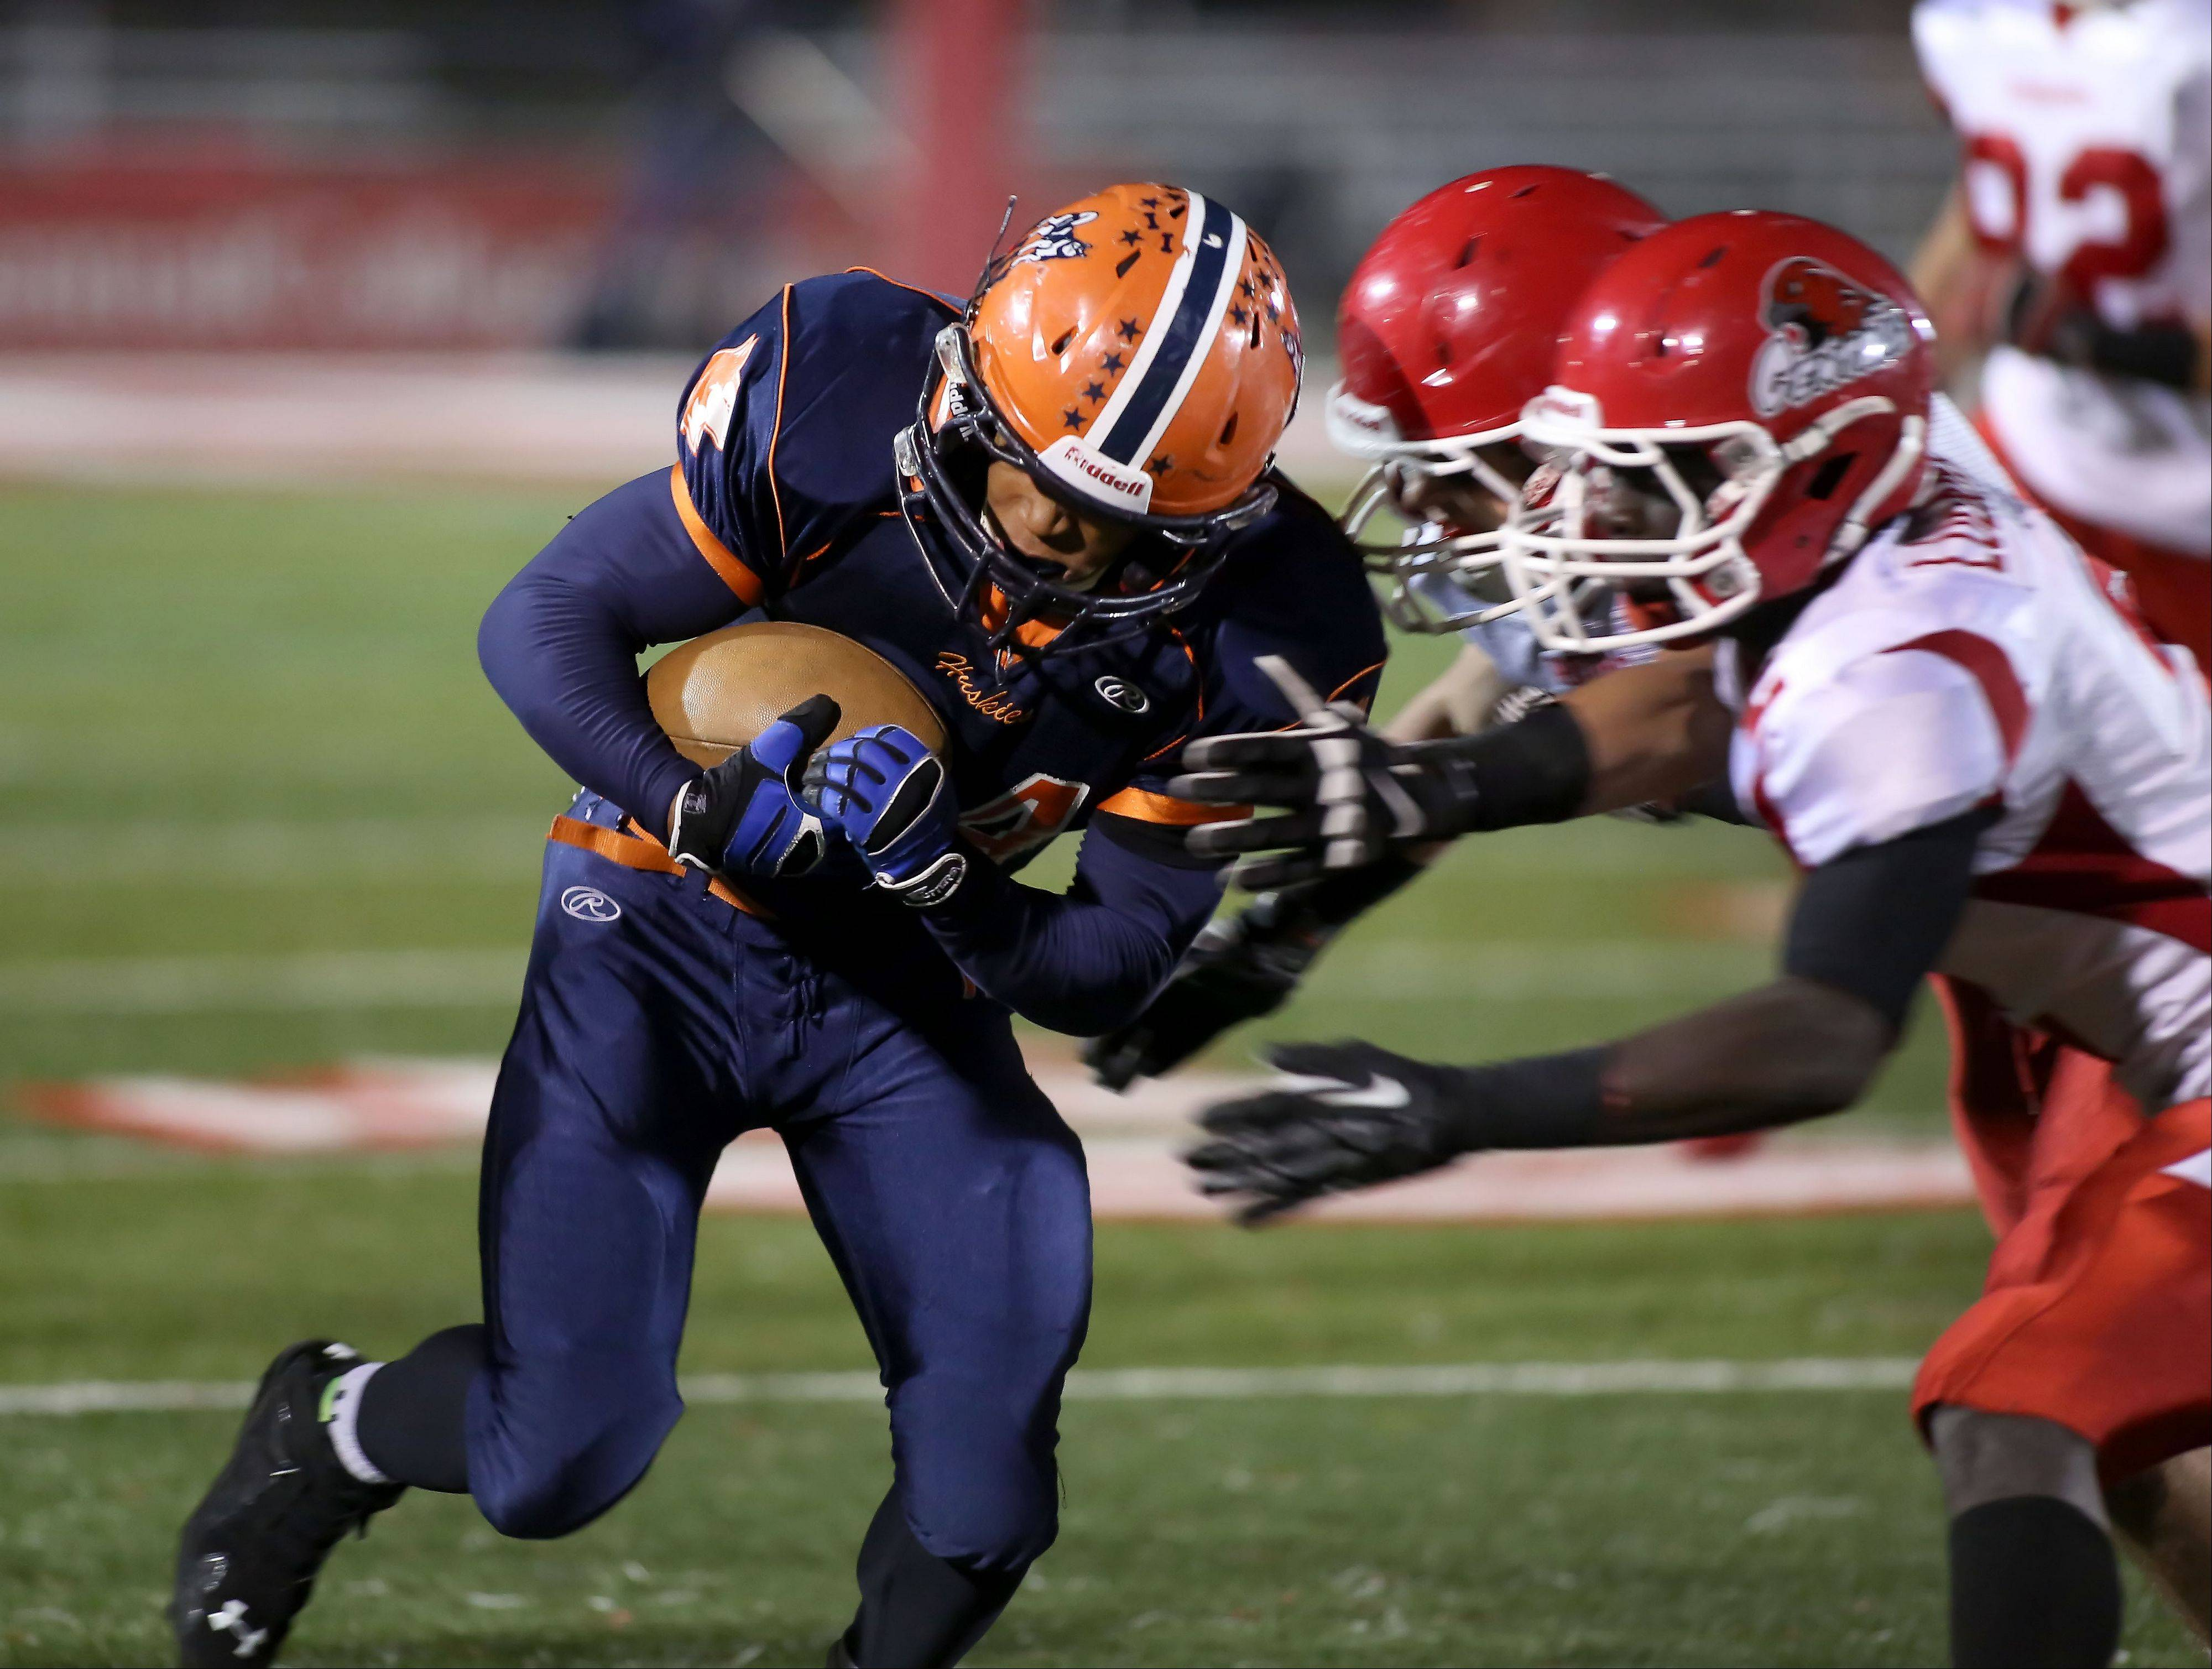 Sharad Crosby of Naperville North, left, tries to evade the Naperville Central defense.